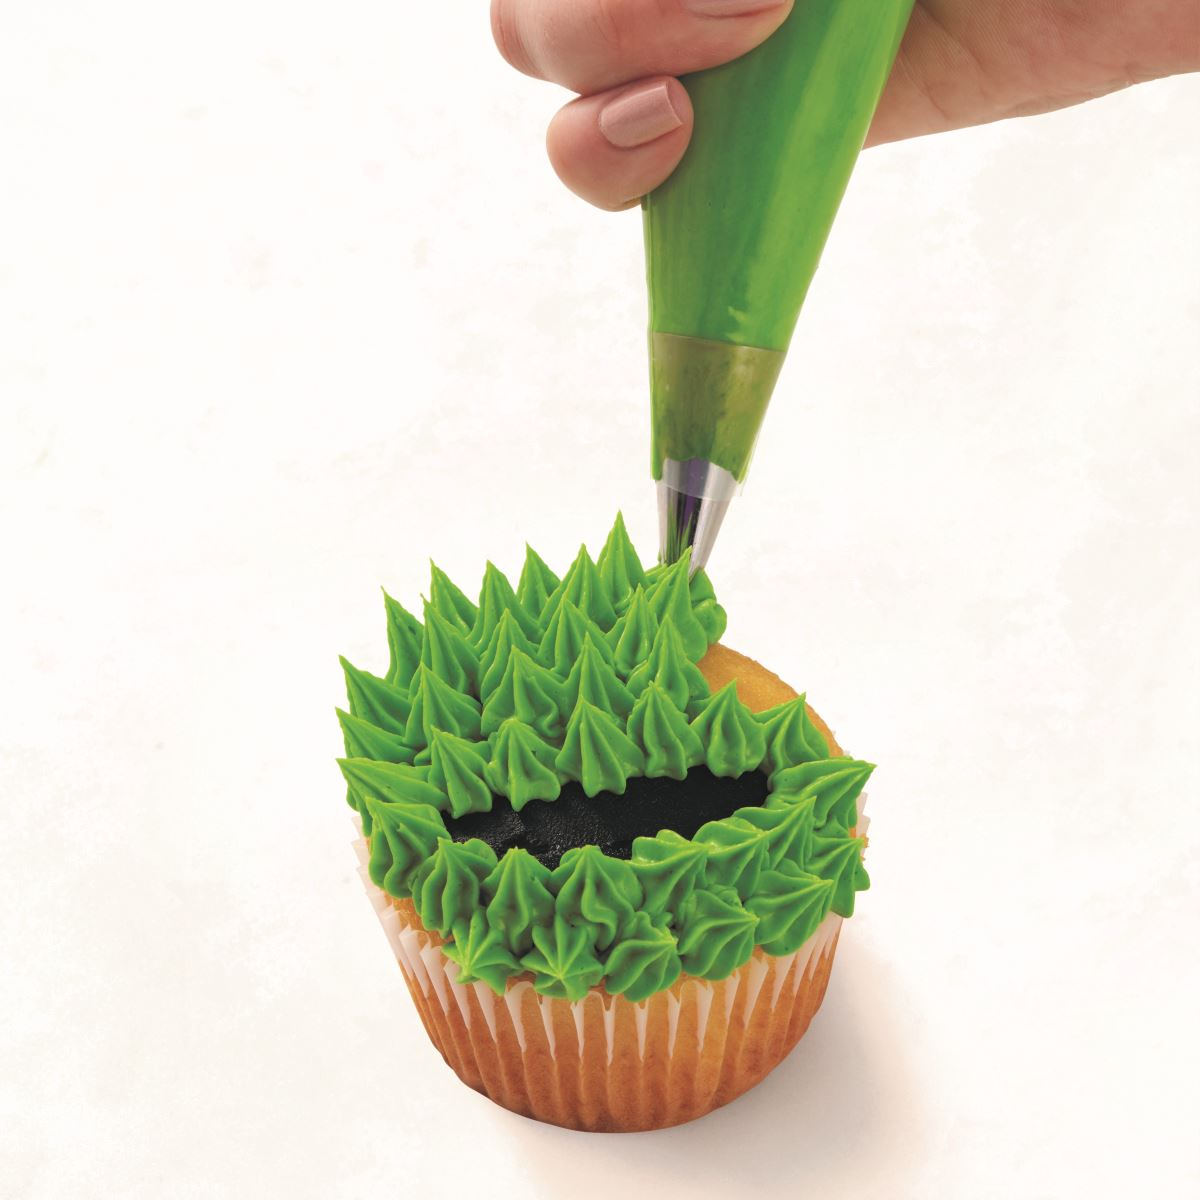 GREEN MONSTER CUPCAKE step 3